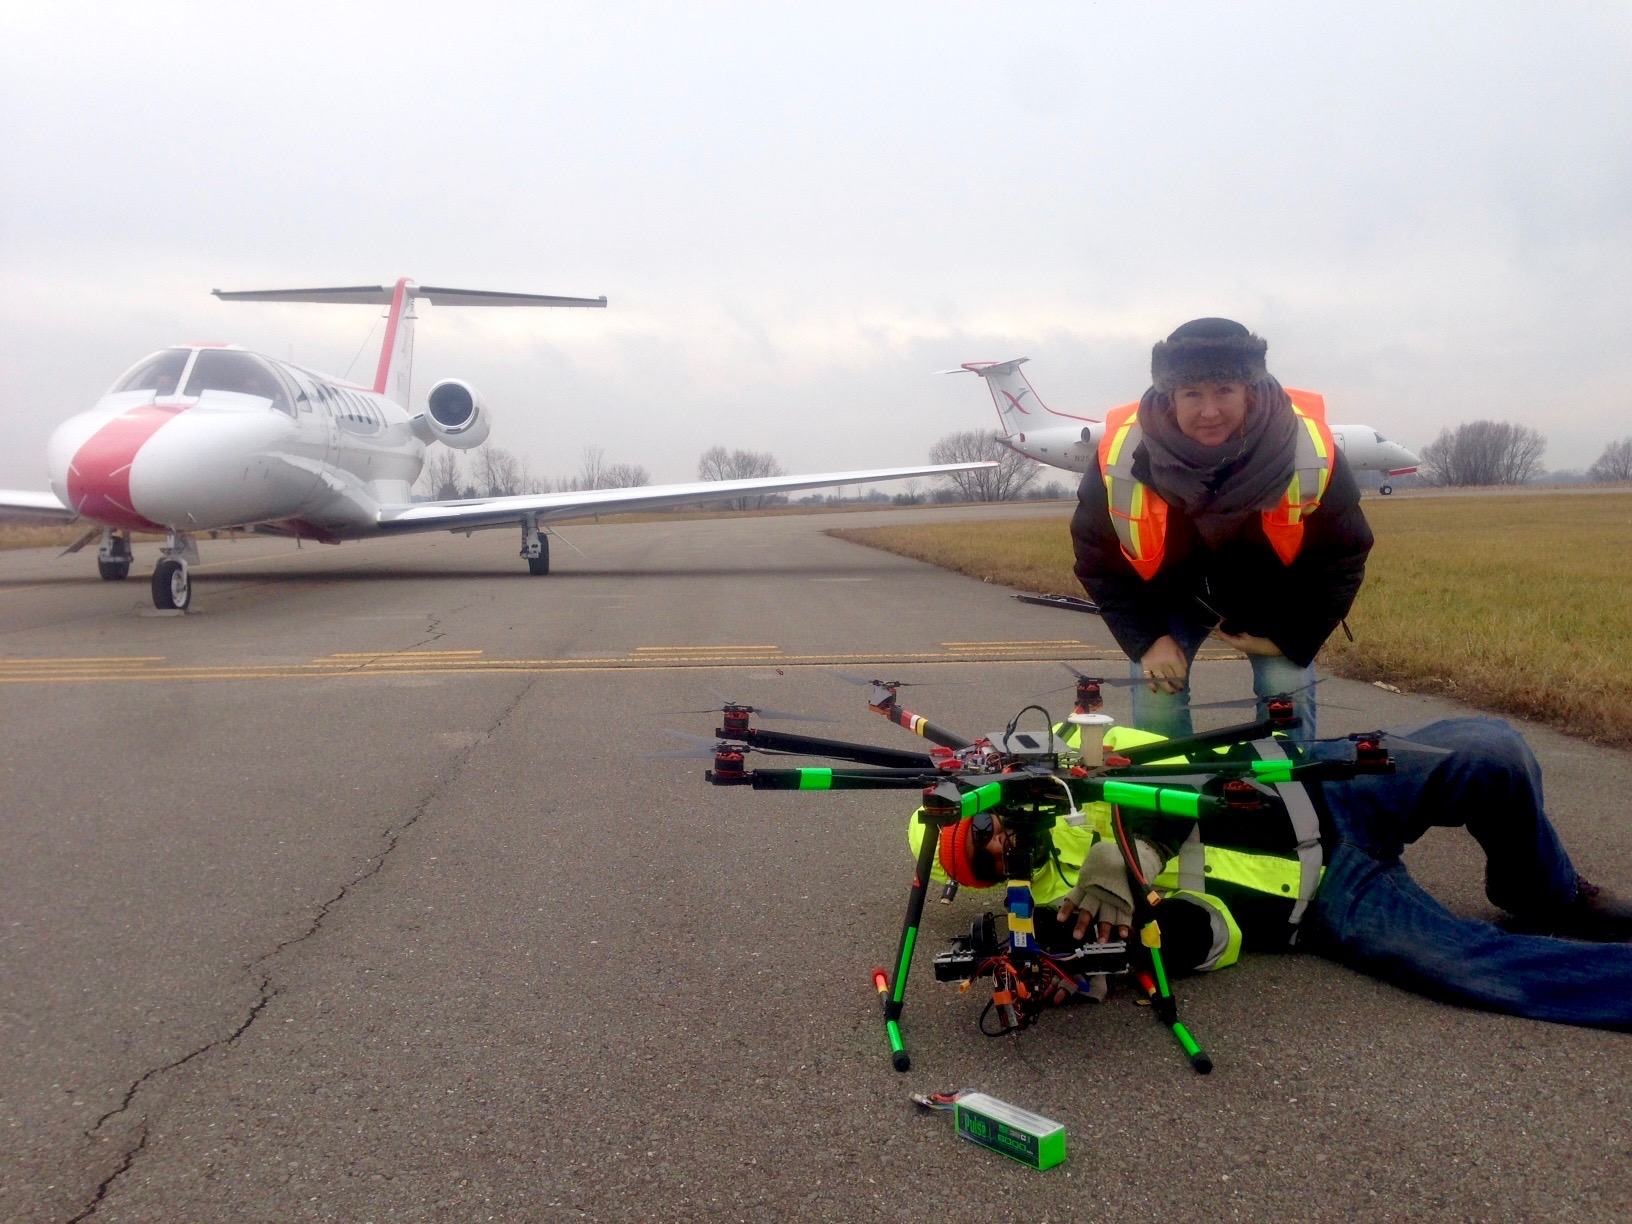 Shooting planes with Drones (legally!)